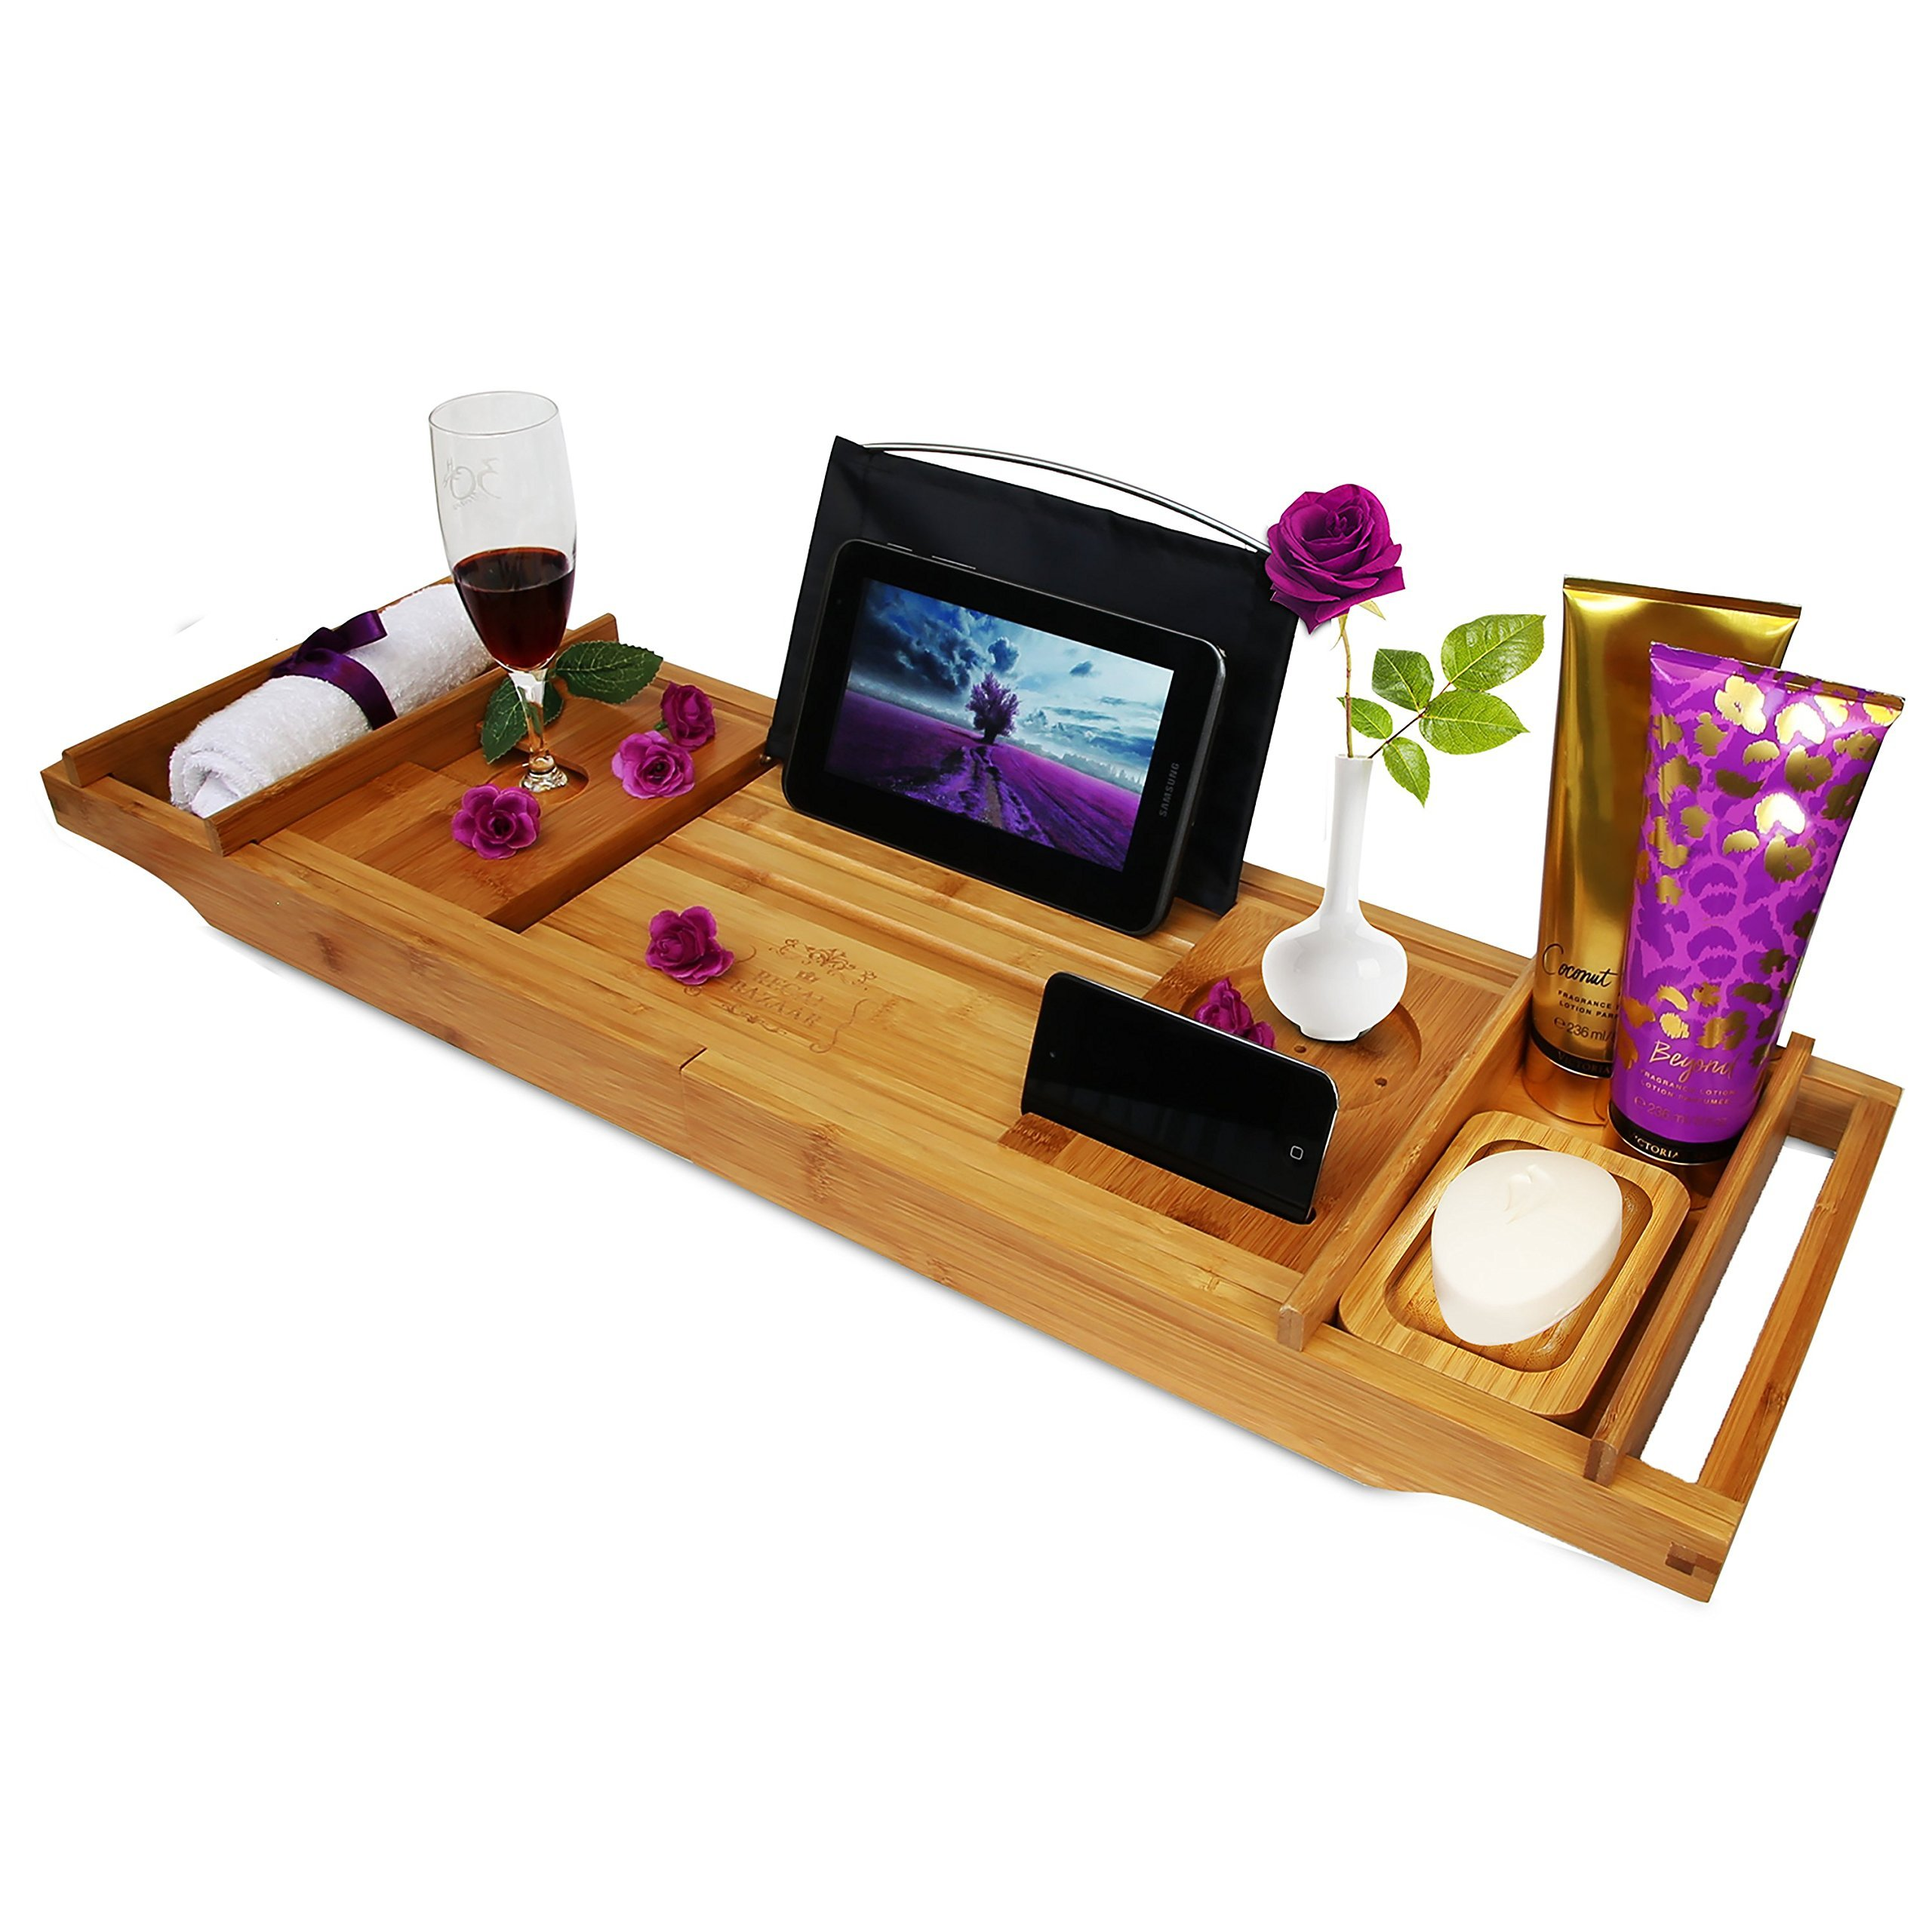 Regal Bazaar Bamboo Bath Tub Caddy Tray - Extending Sides, 2 Removable Spa Trays, Book Holding Stand, Cellphone Slot, Wine Glass and Cup Holders, and Non Slip Base - Free Soap Dish by Regal Bazaar (Image #1)